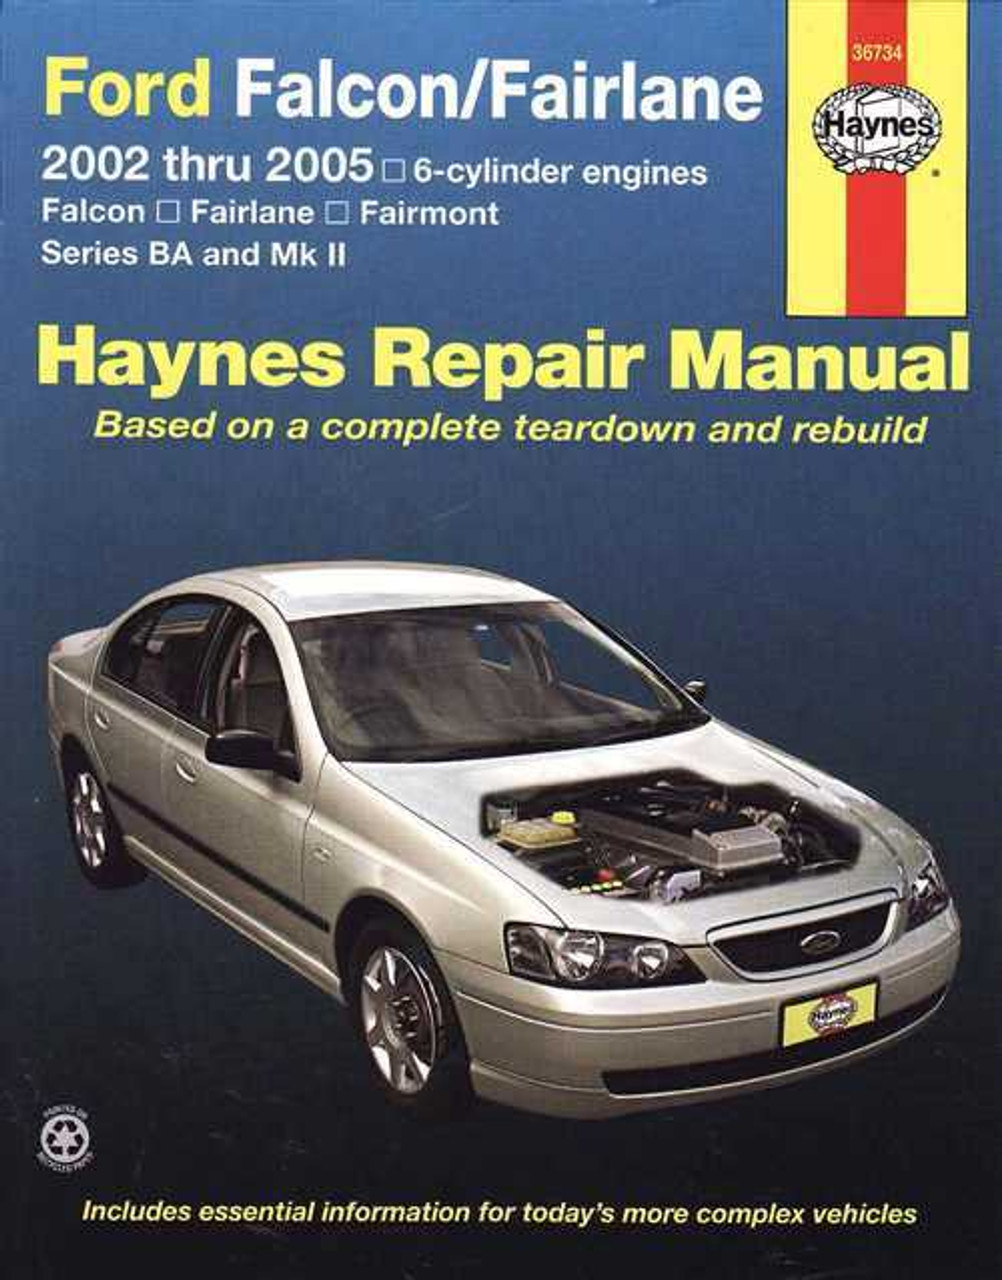 ford falcon fairlane 2002 2005 workshop manual rh automotobookshop com au fg falcon workshop manual fg falcon workshop manual